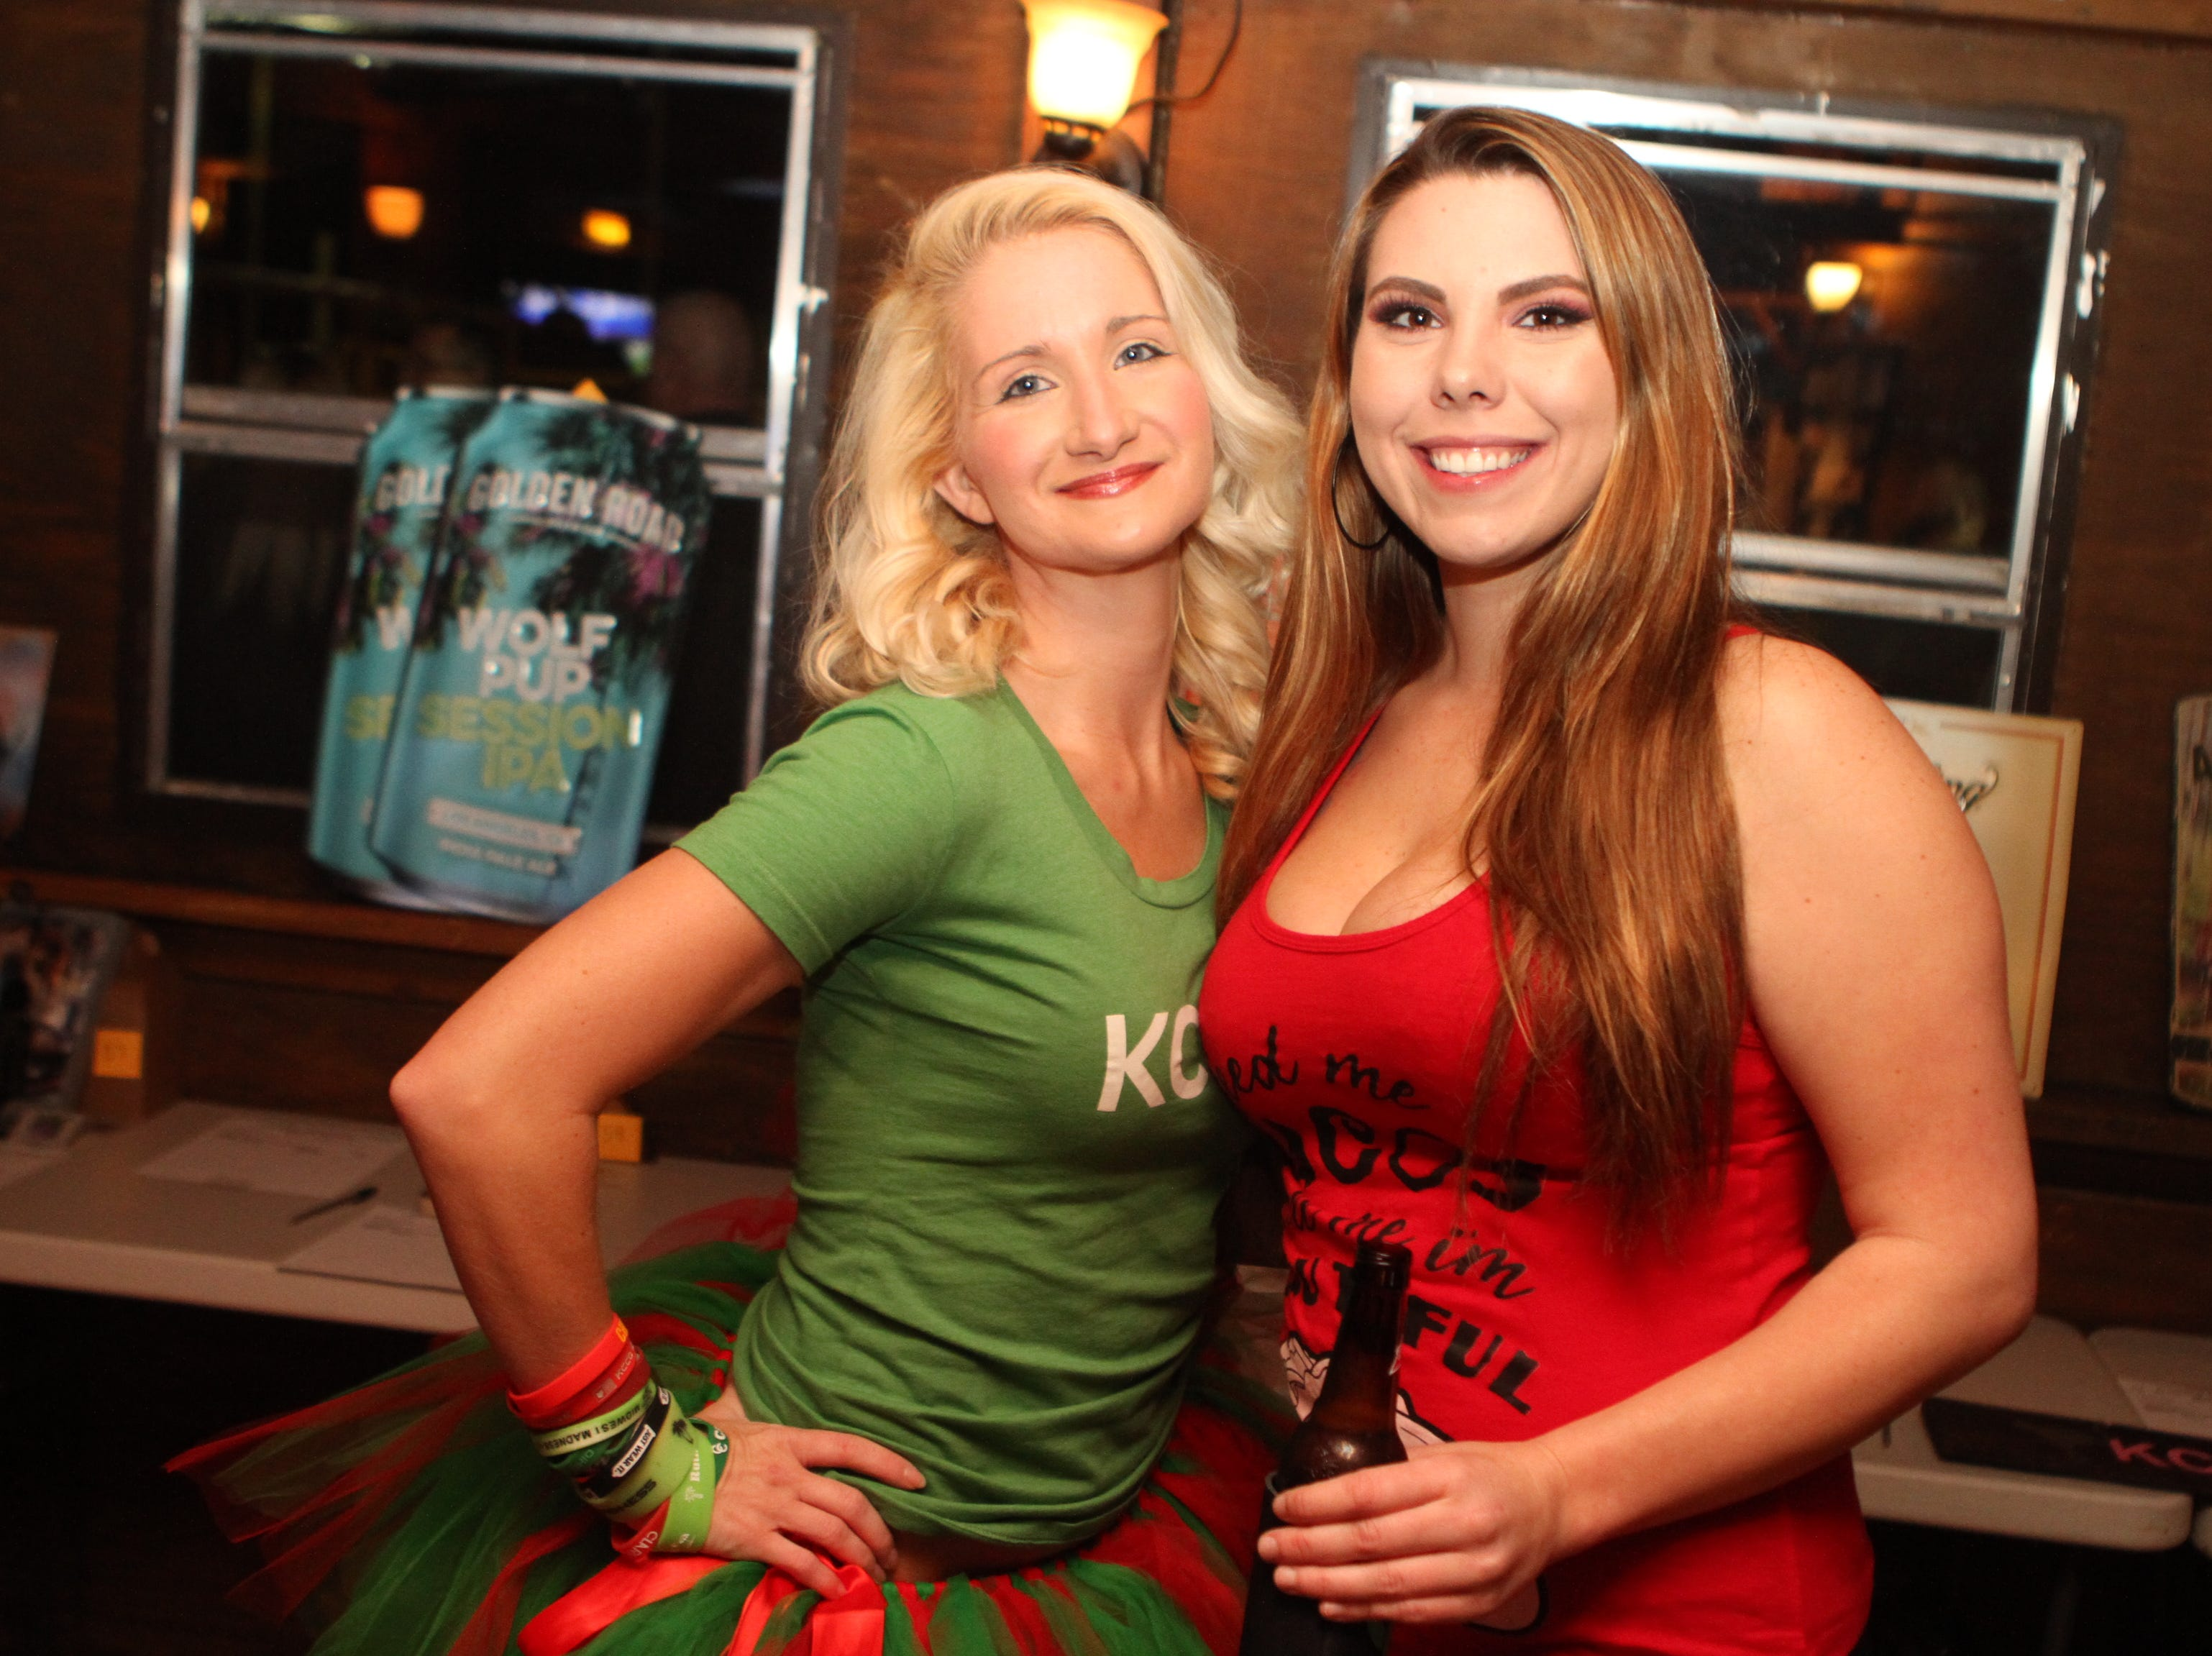 Clarksville Chive's Samantha Henson and Neanna Lamora at Gettin' Stupid For Cupid 3 at O'Connor's on Saturday, October 20, 2018.